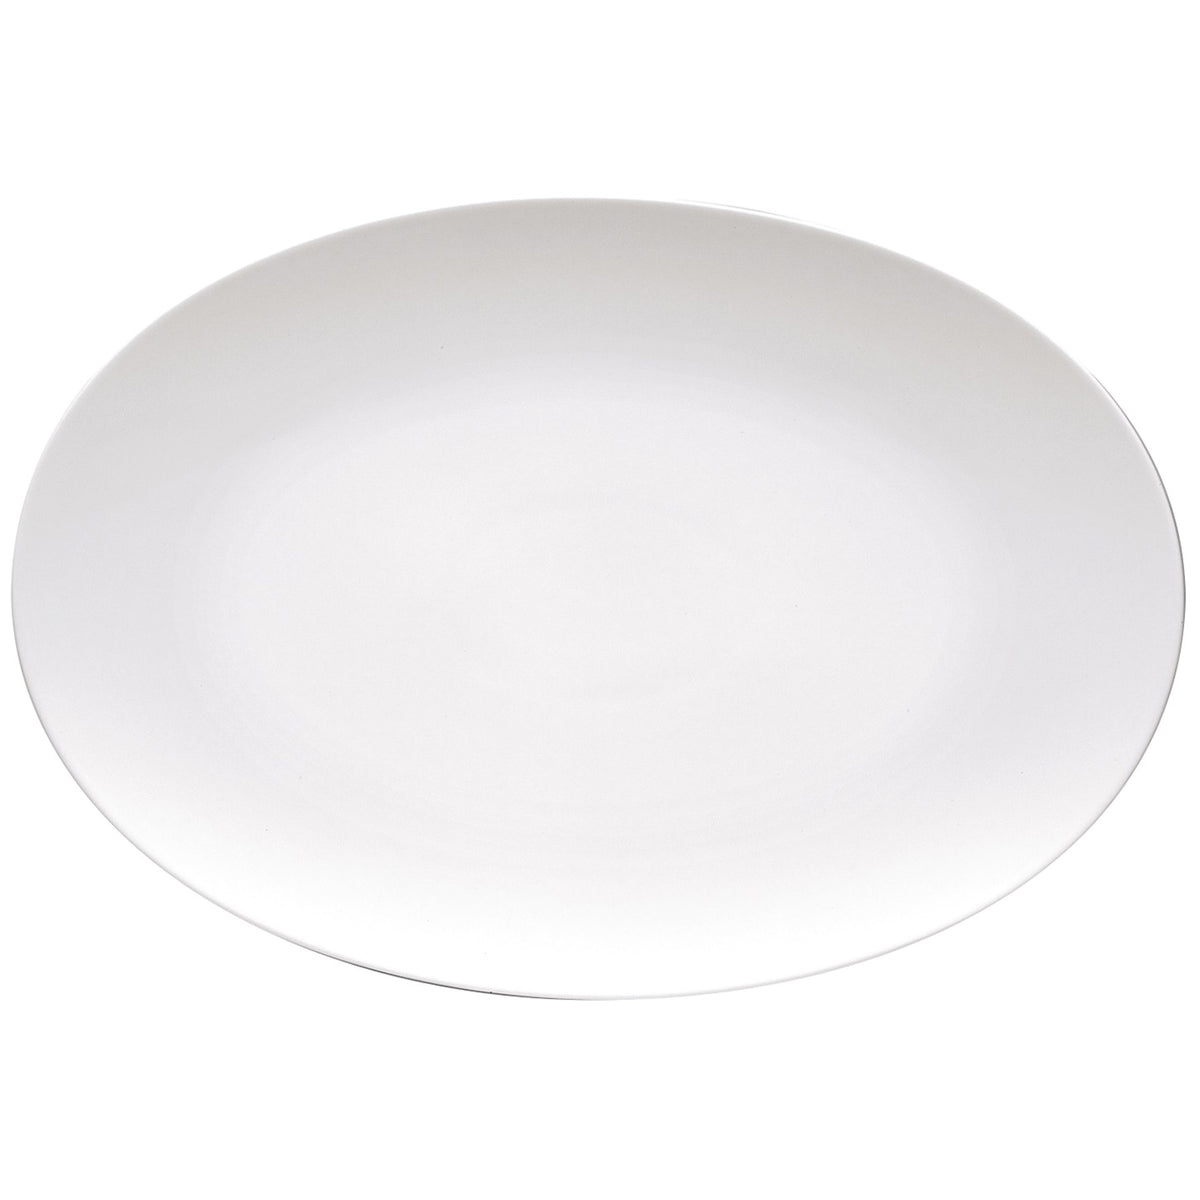 Tac 02 White Porcelain Platter Large